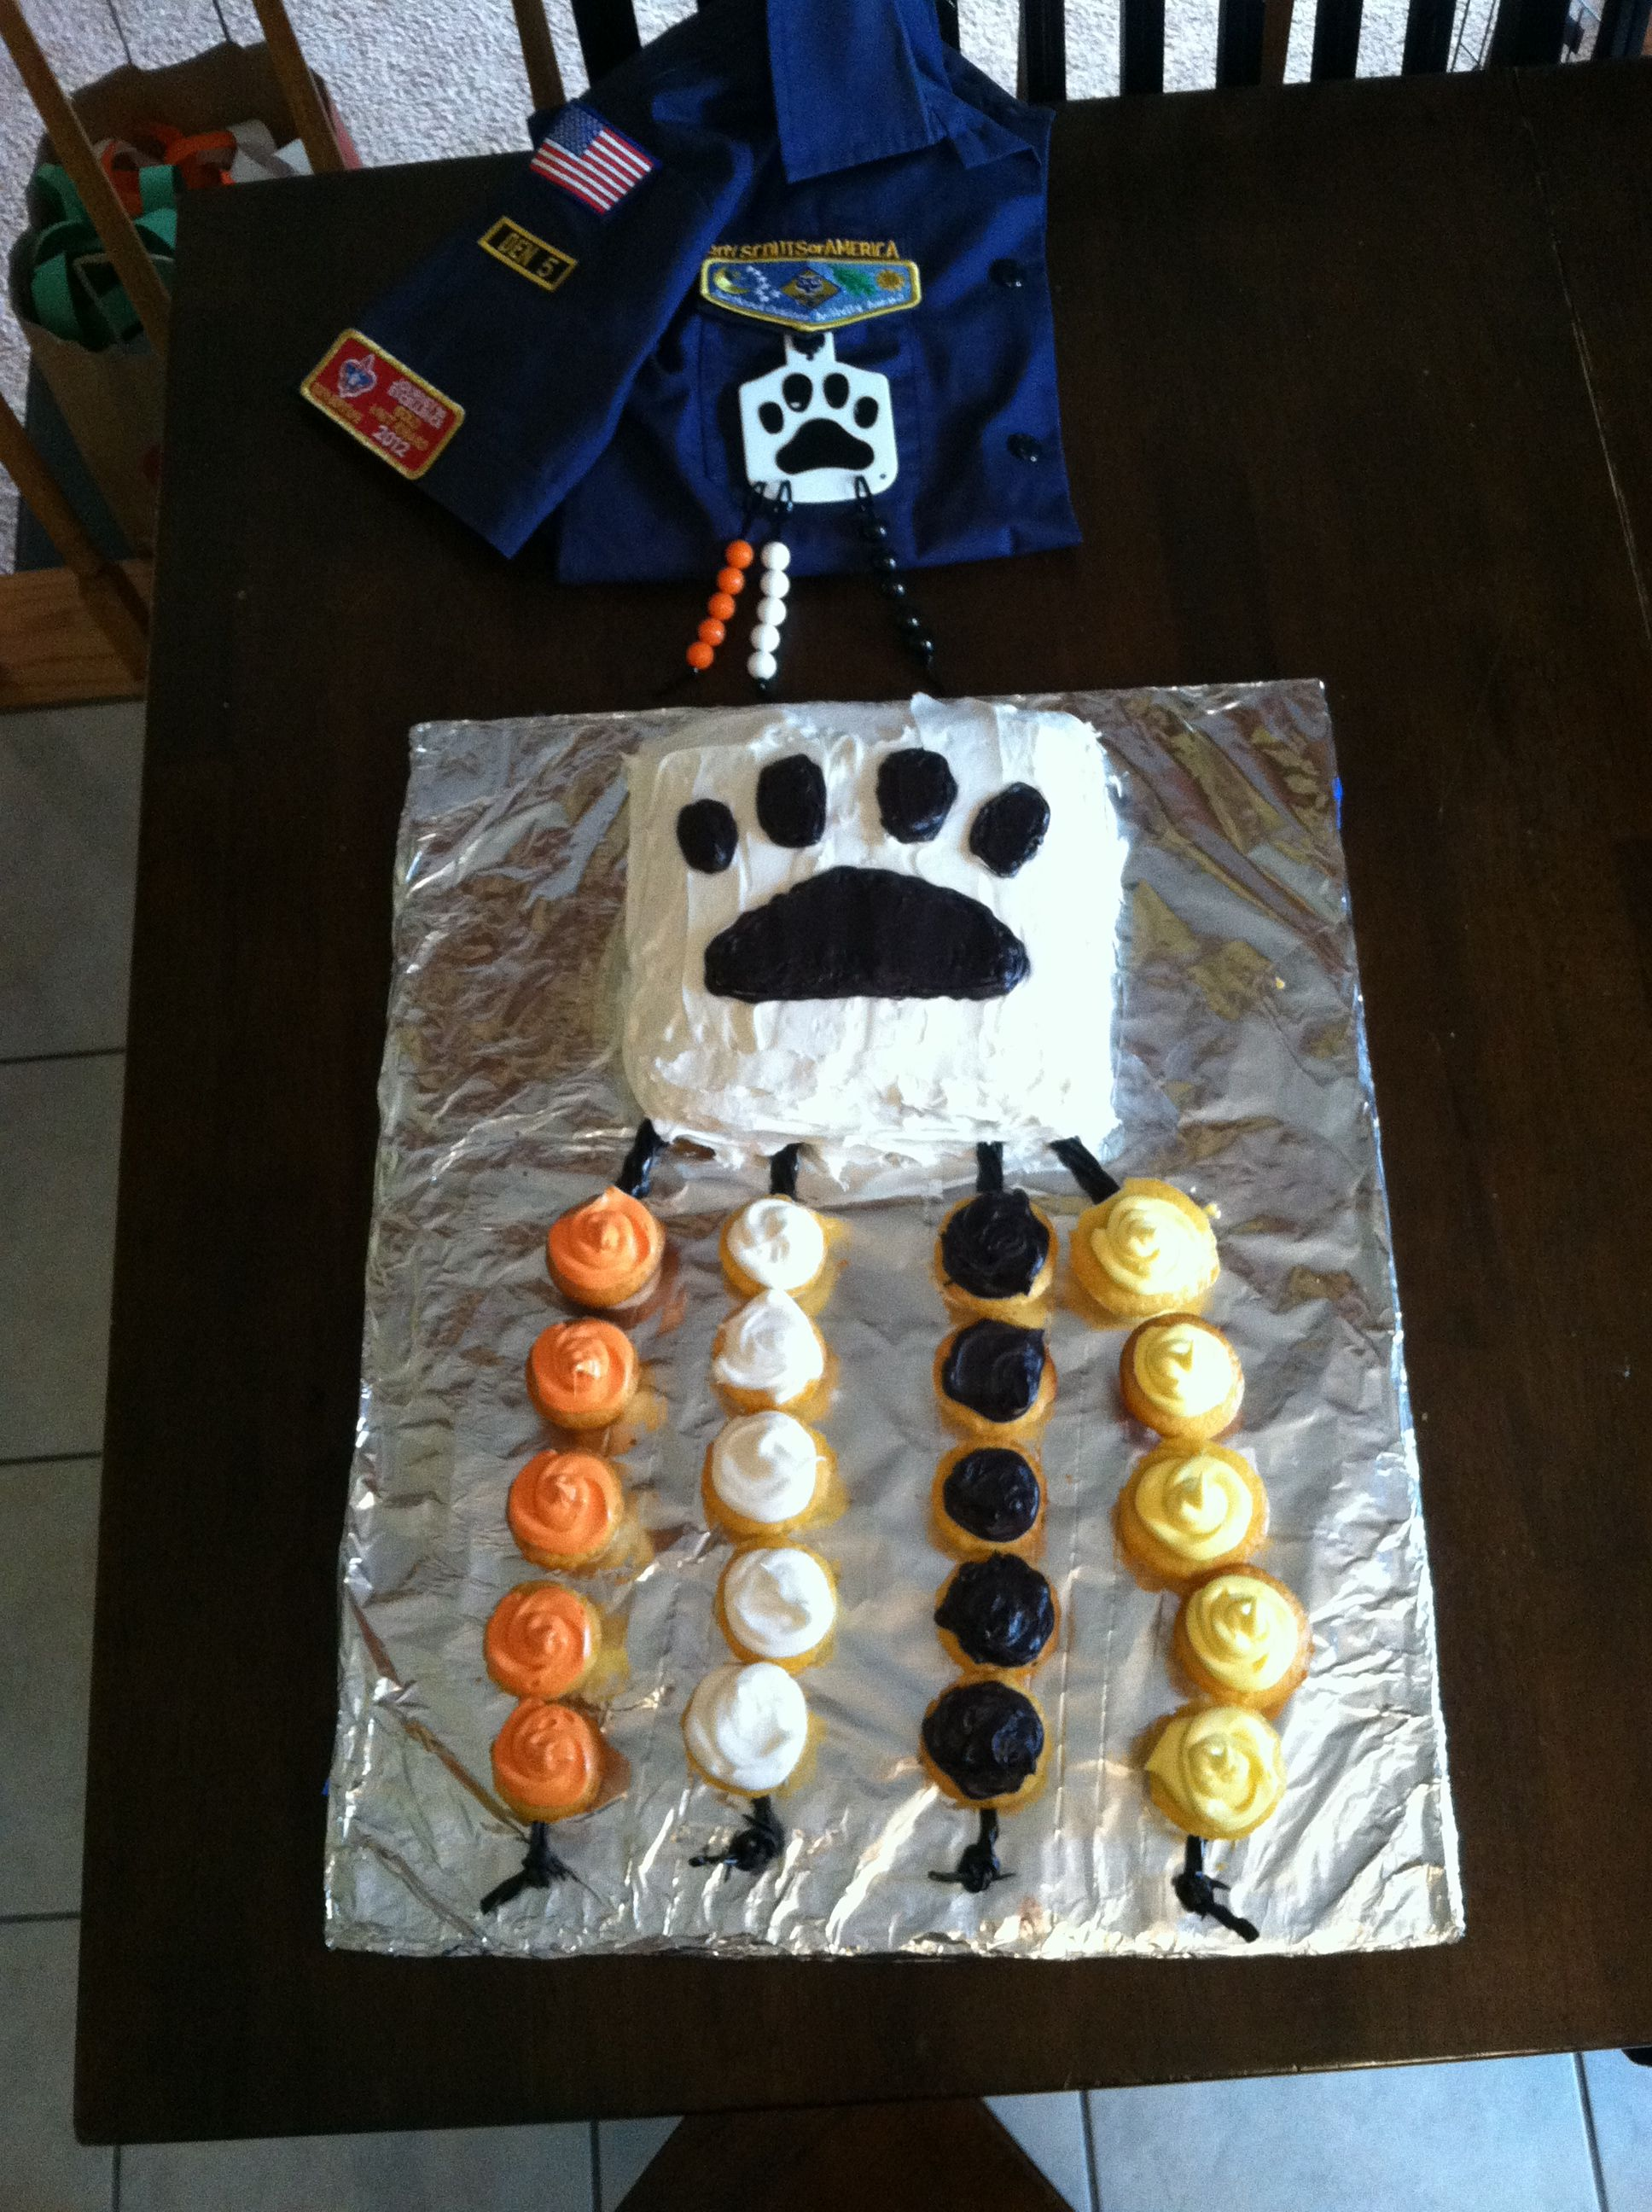 Pin Similaraug T Who Is Werent Made Cake On Pinterest